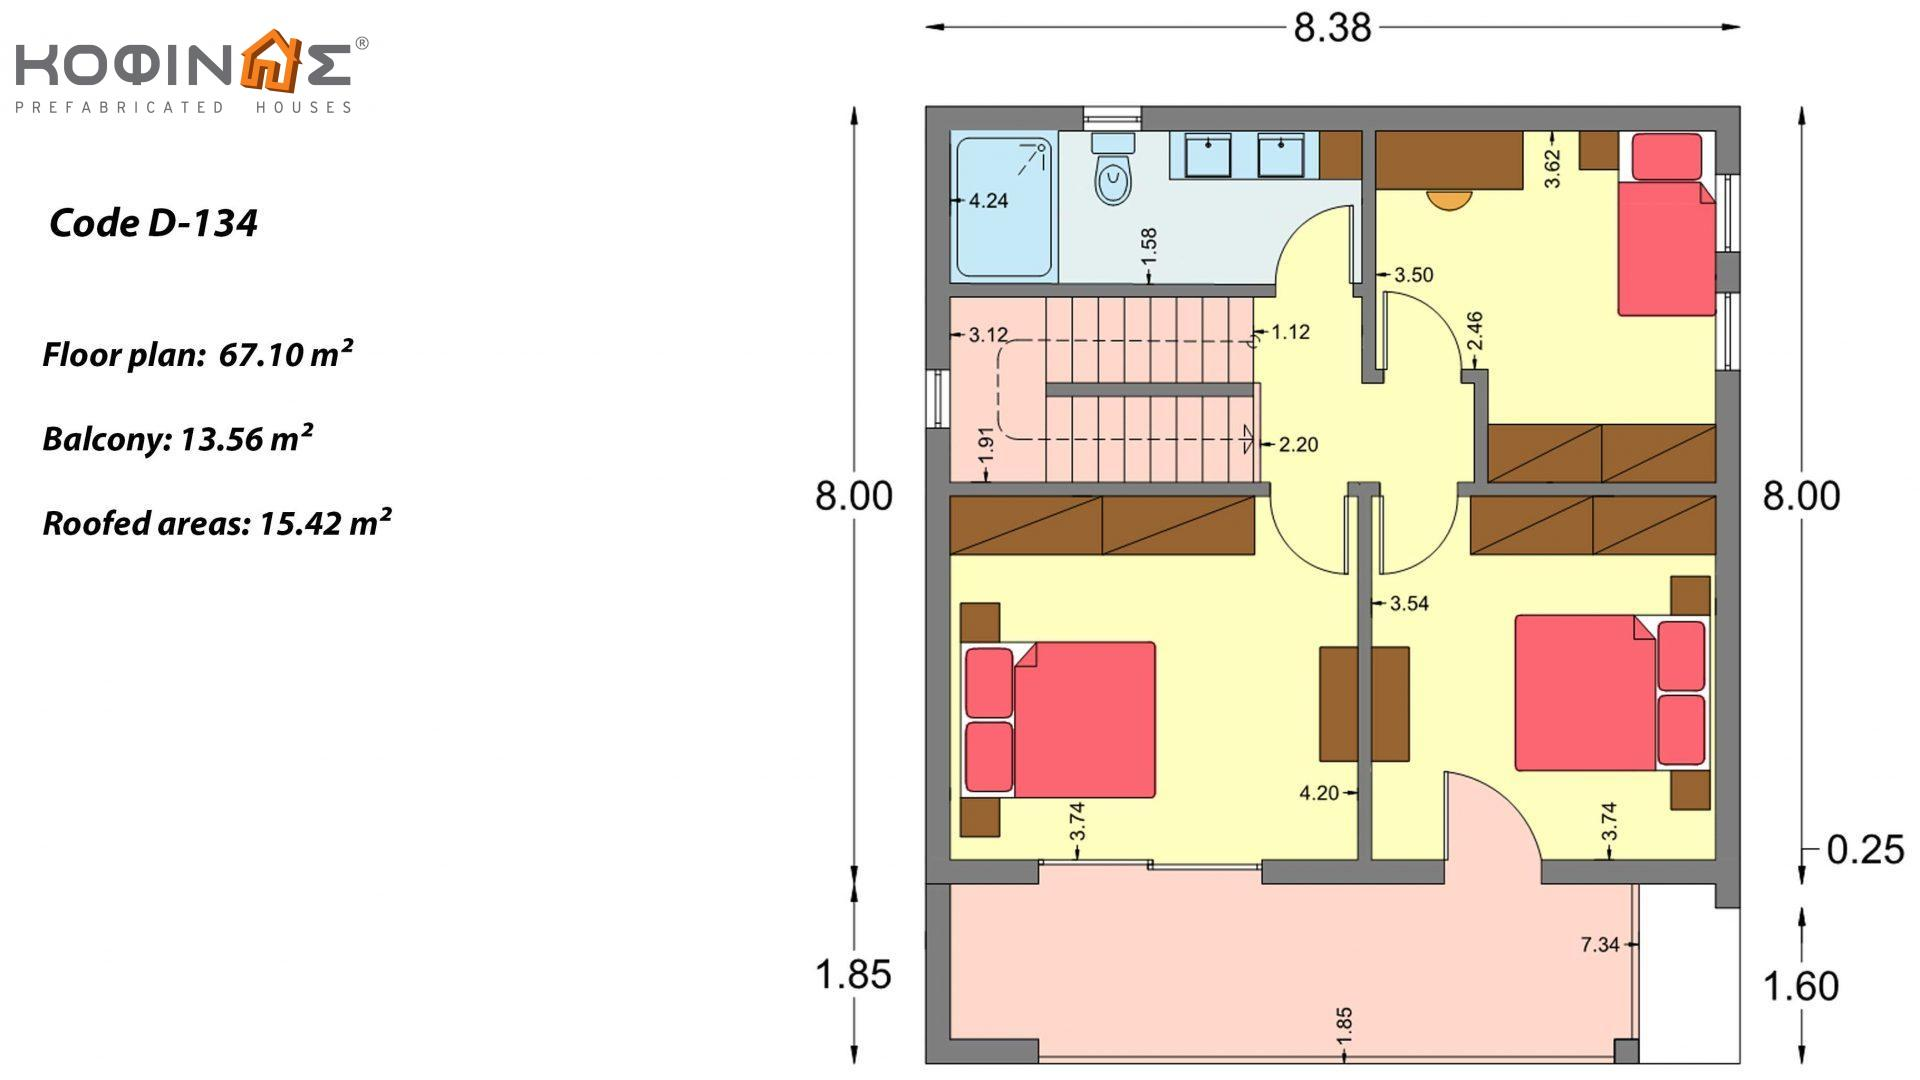 2-story house D-134, total surface of  134,26 m², roofed areas 31,28 m², balconies13,56 m²